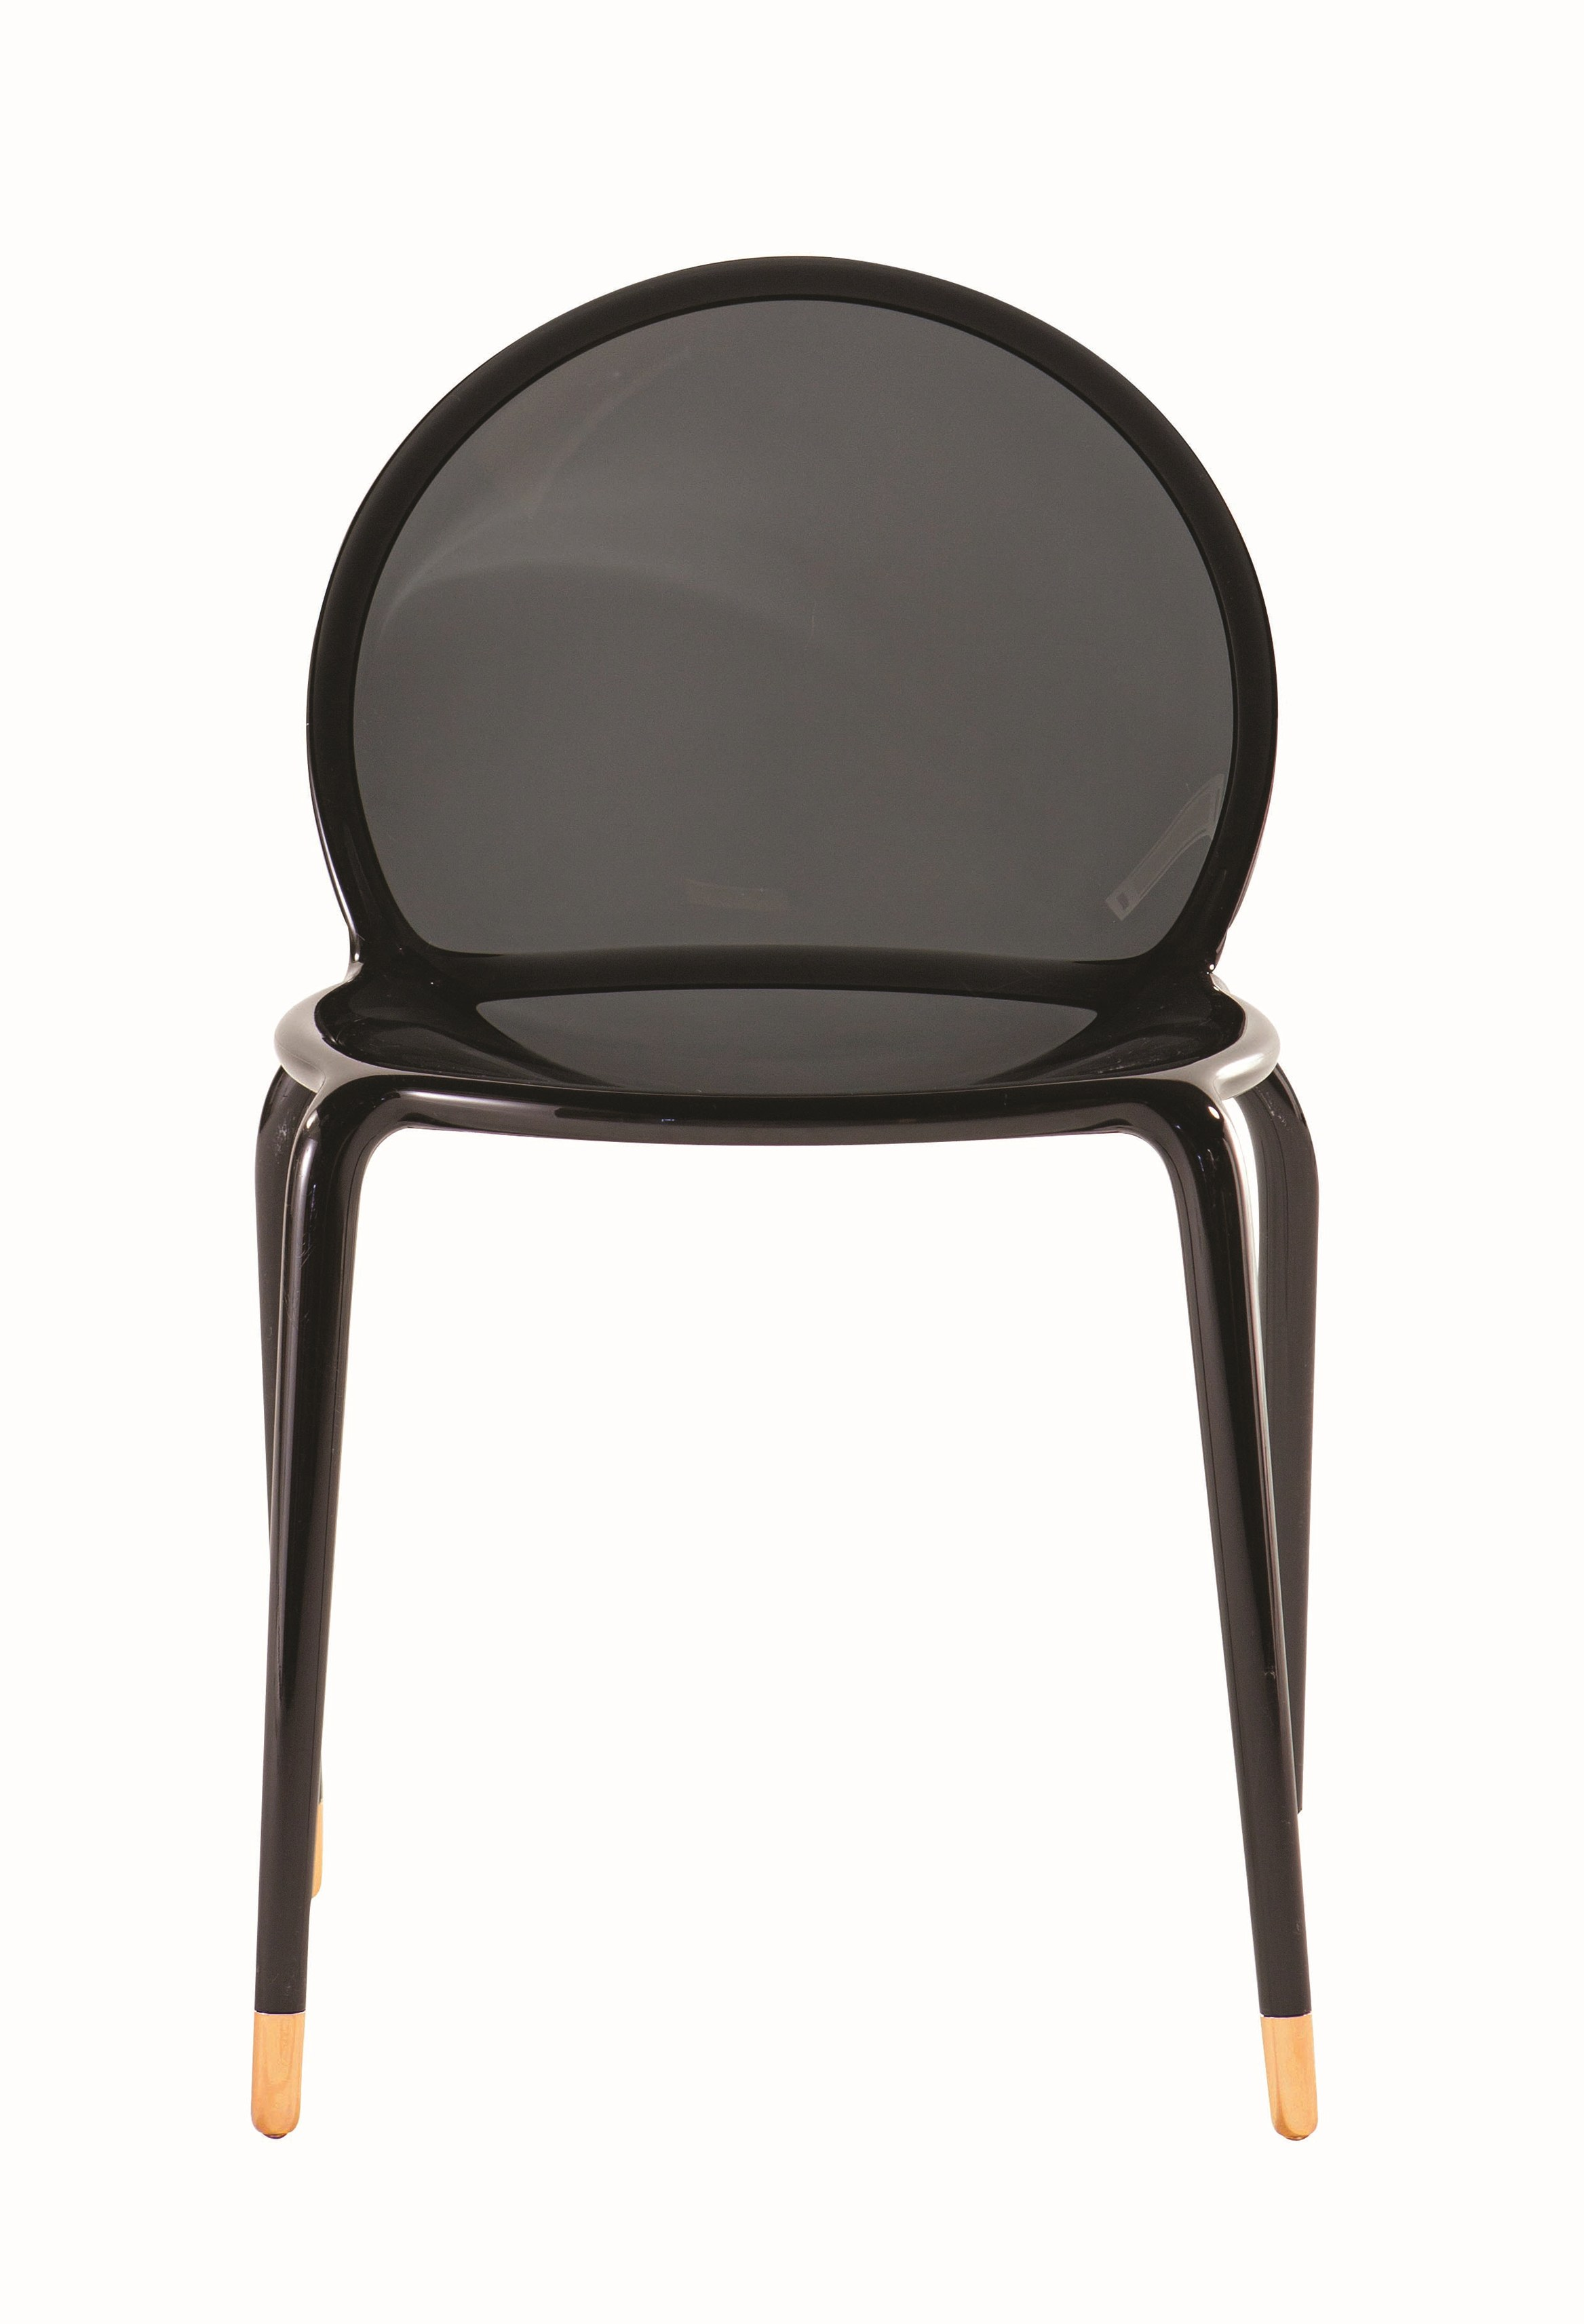 stackable polycarbonate chair loop by roche bobois design. Black Bedroom Furniture Sets. Home Design Ideas